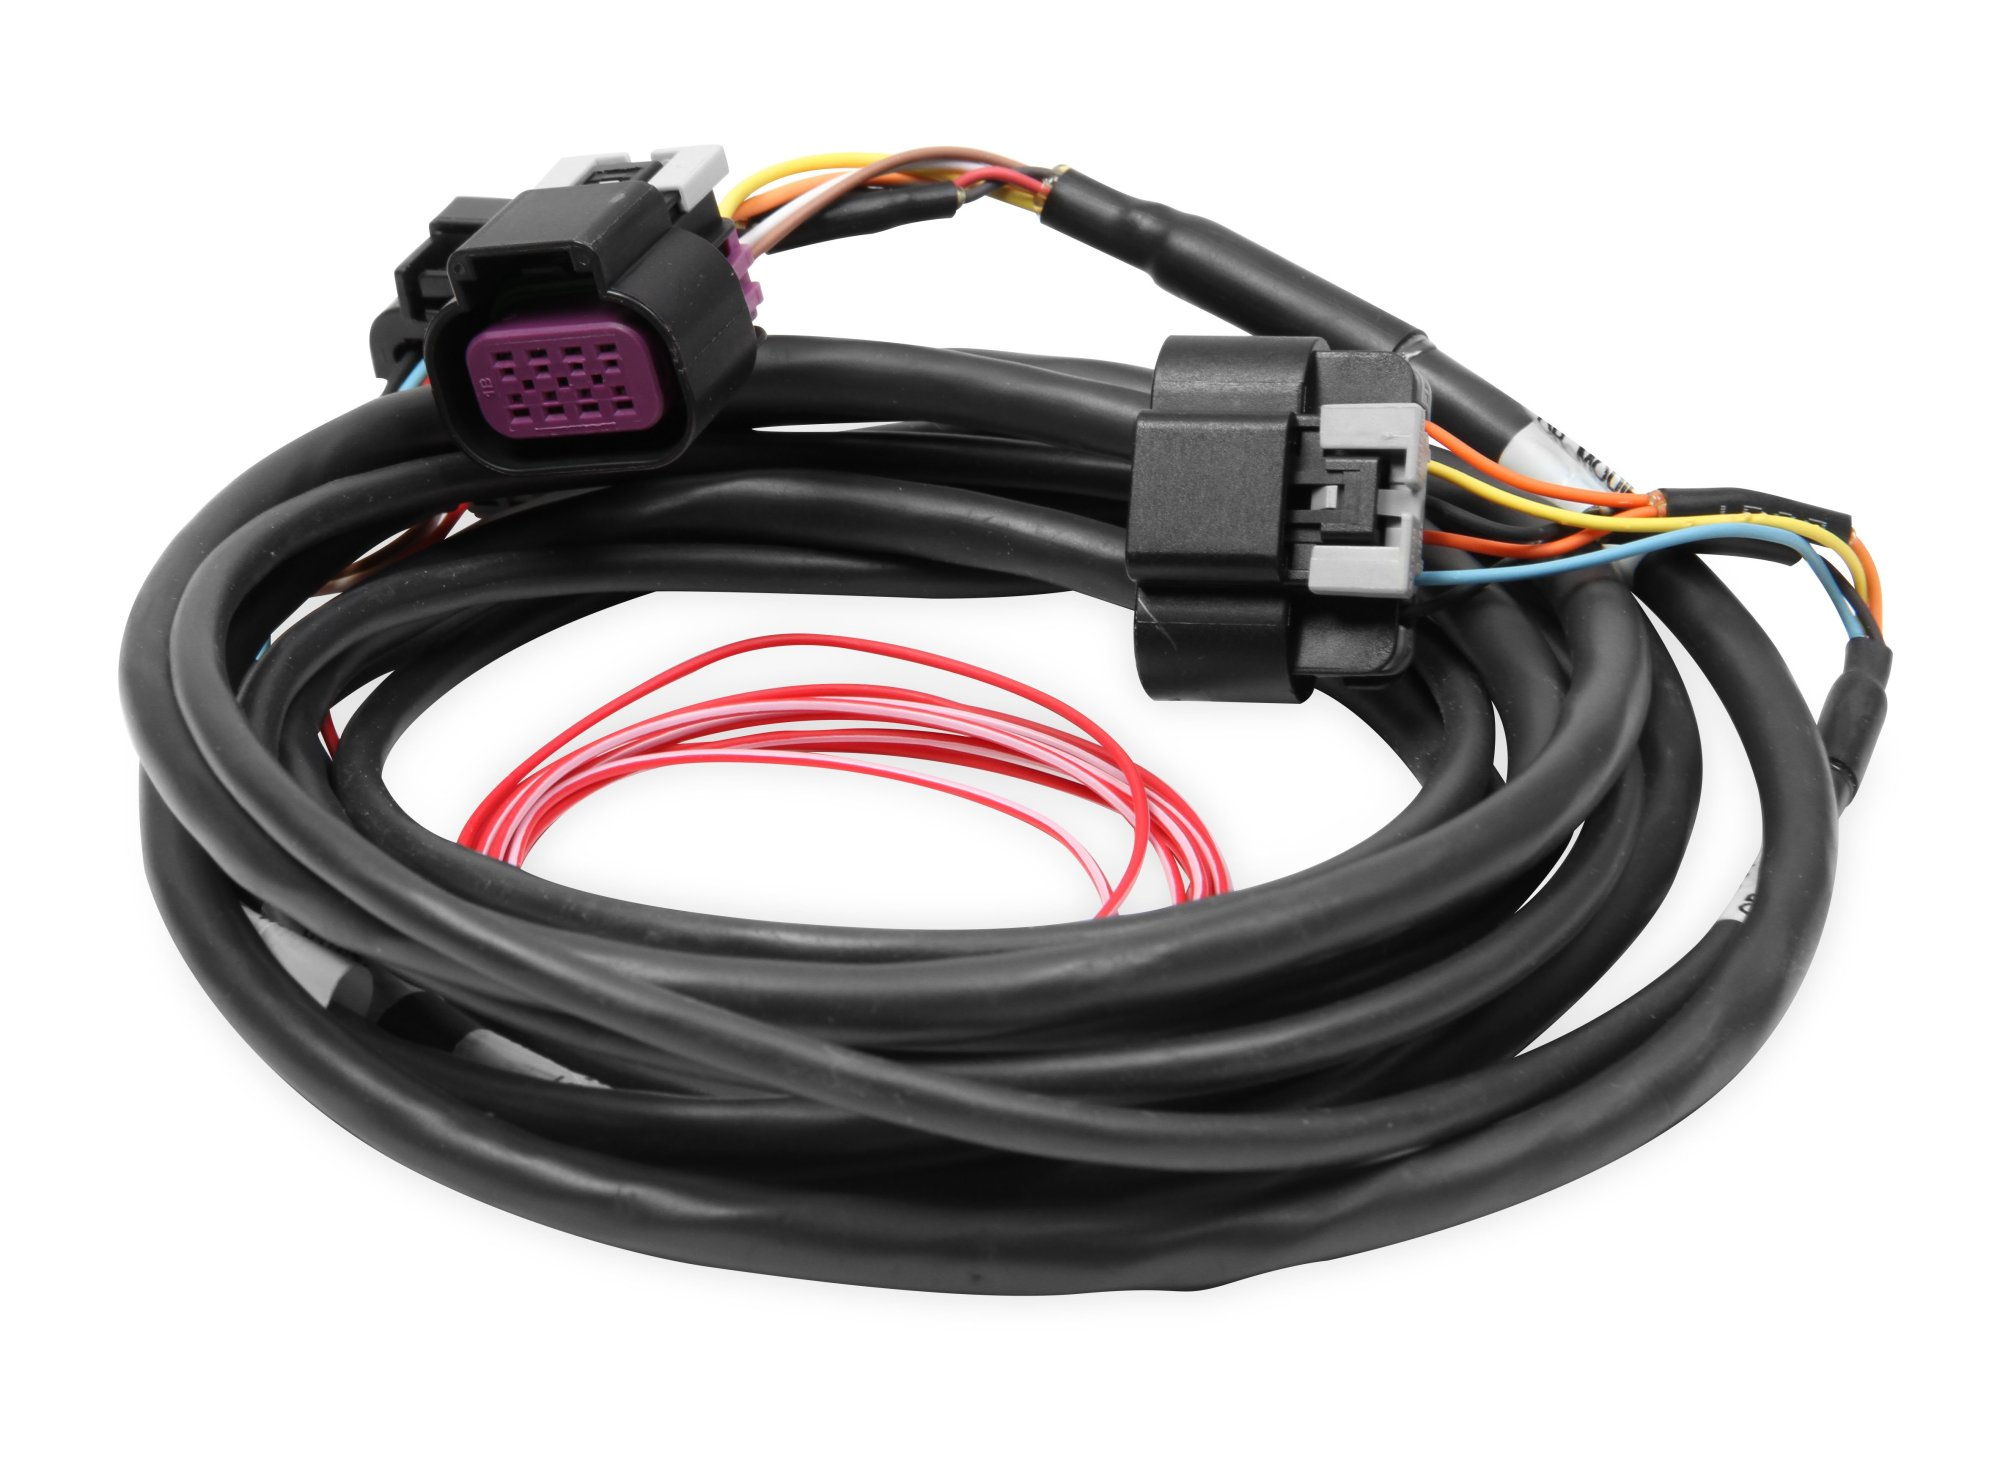 hight resolution of holley efi 558 429 dominator efi gm drive by wire harness early truck fuel injector wiring harness gm wiring harness